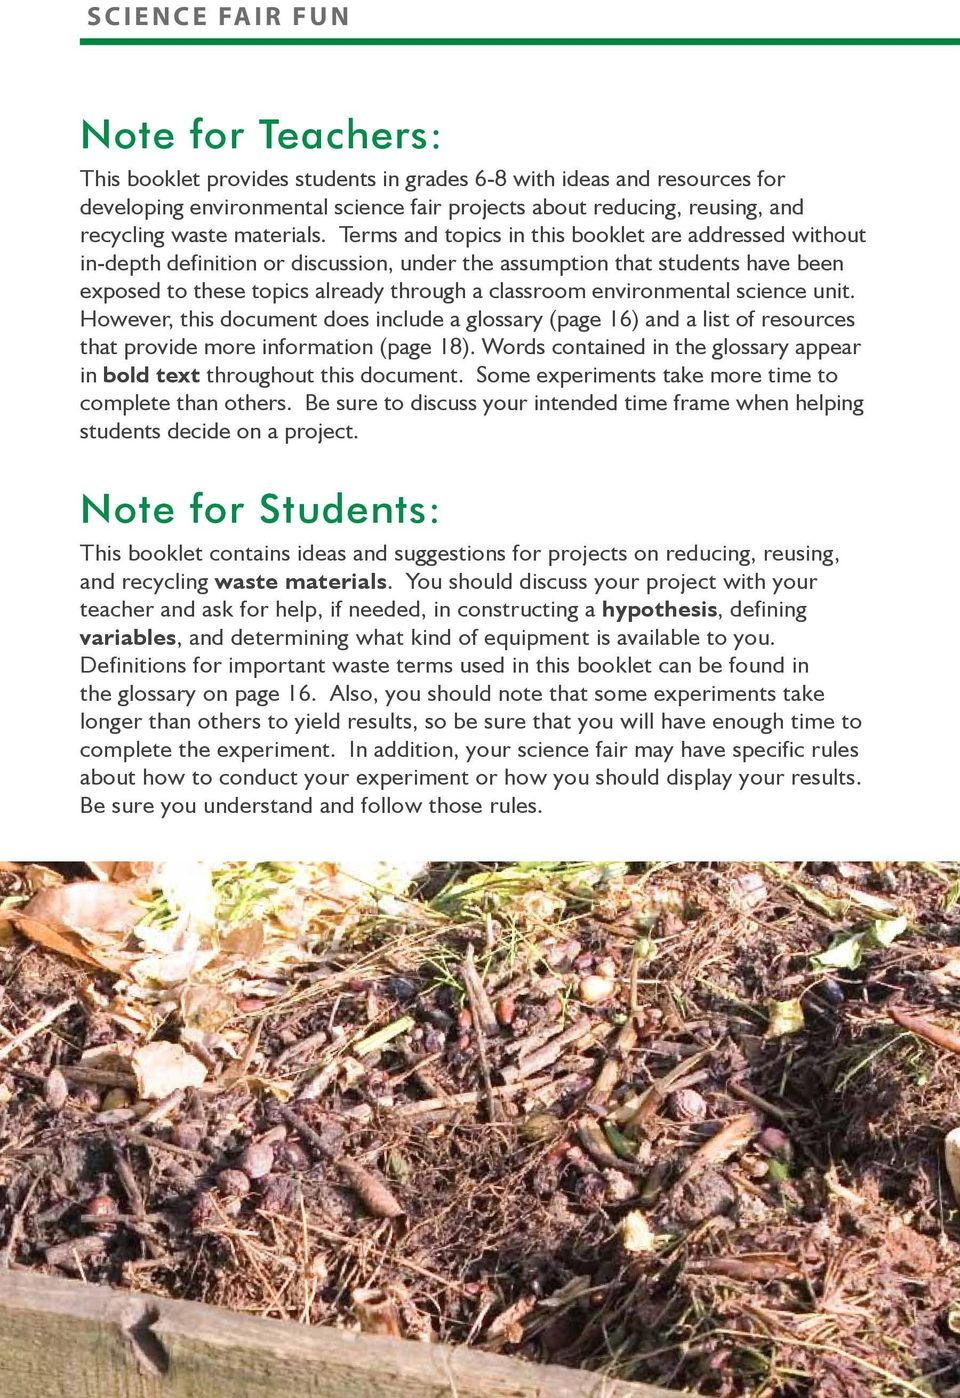 environmental science unit. However, this document does include a glossary (page 16) and a list of resources that provide more information (page 18).